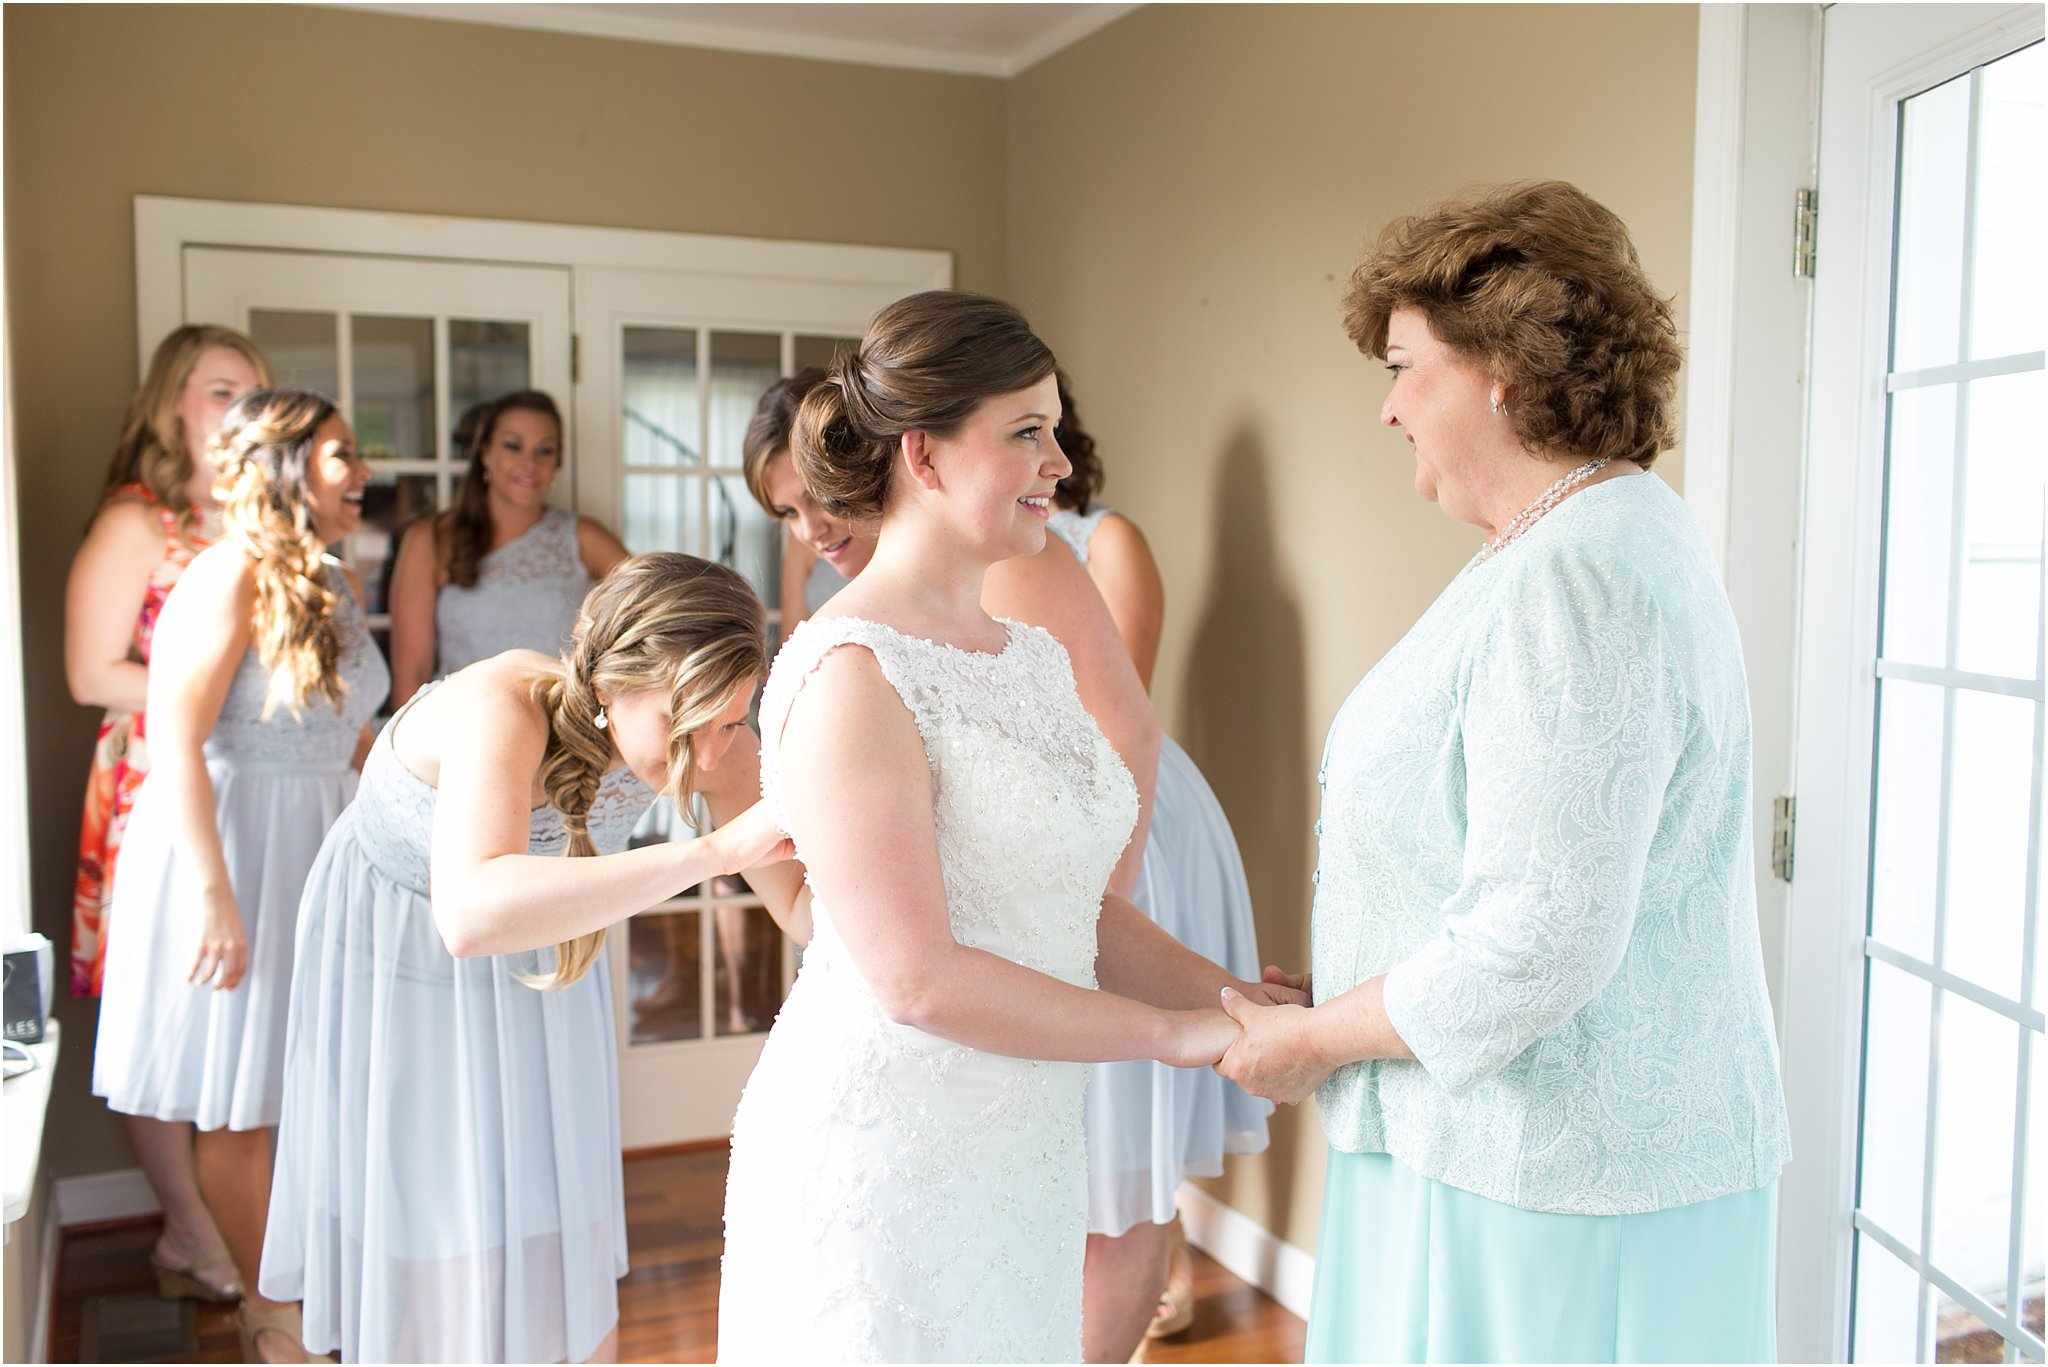 jessica_ryan_photography_holly_ridge_manor_wedding_roost_flowers_jamie_leigh_events_dhalia_edwards_candid_vibrant_wedding_colors_1276